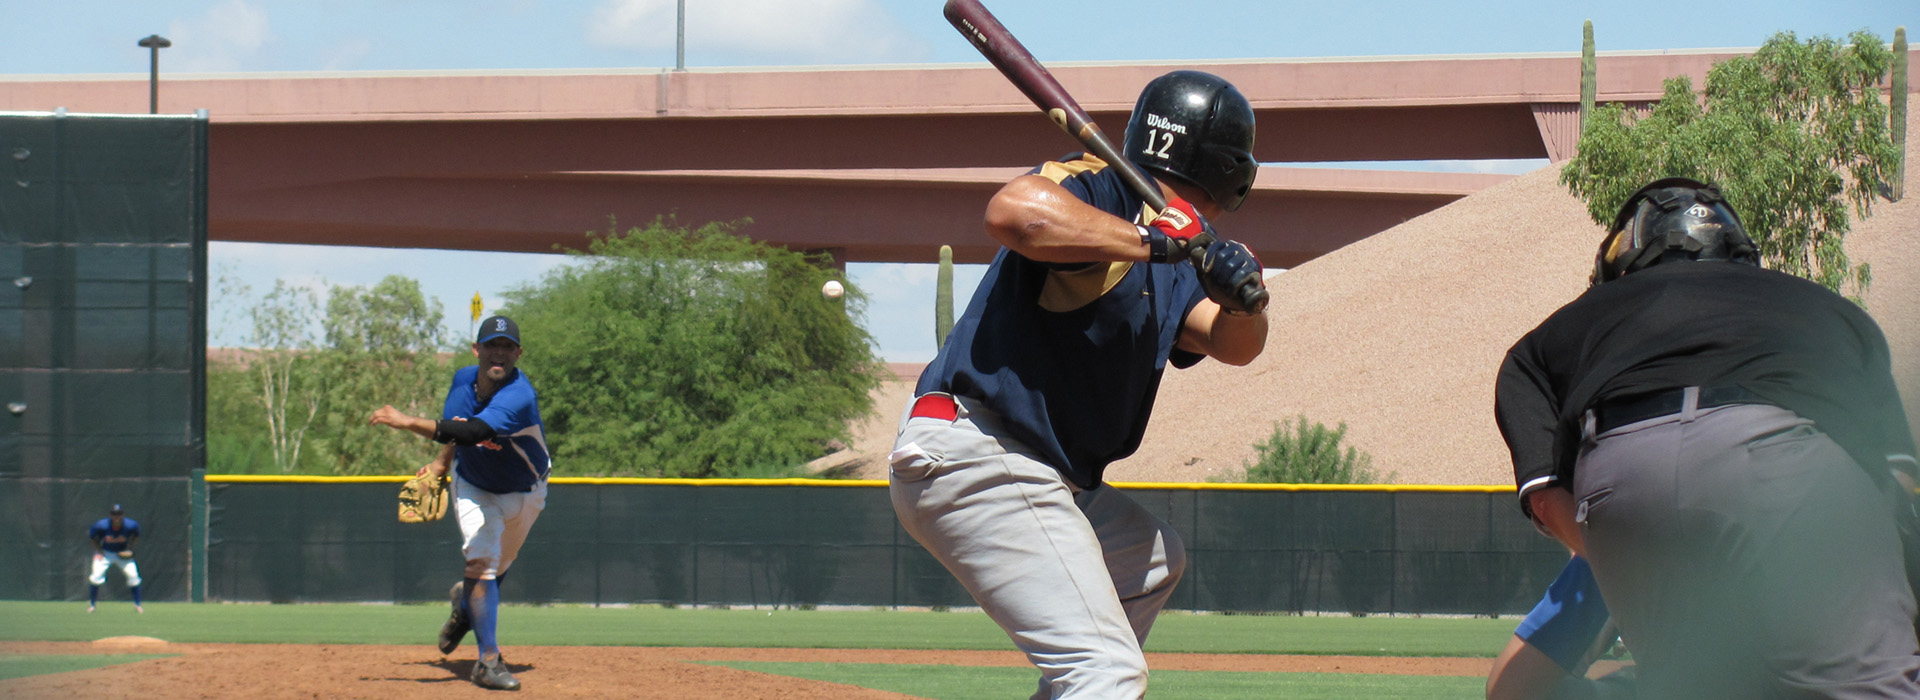 Arizona Men's Senior Baseball League - AZMSBL - Homepage7